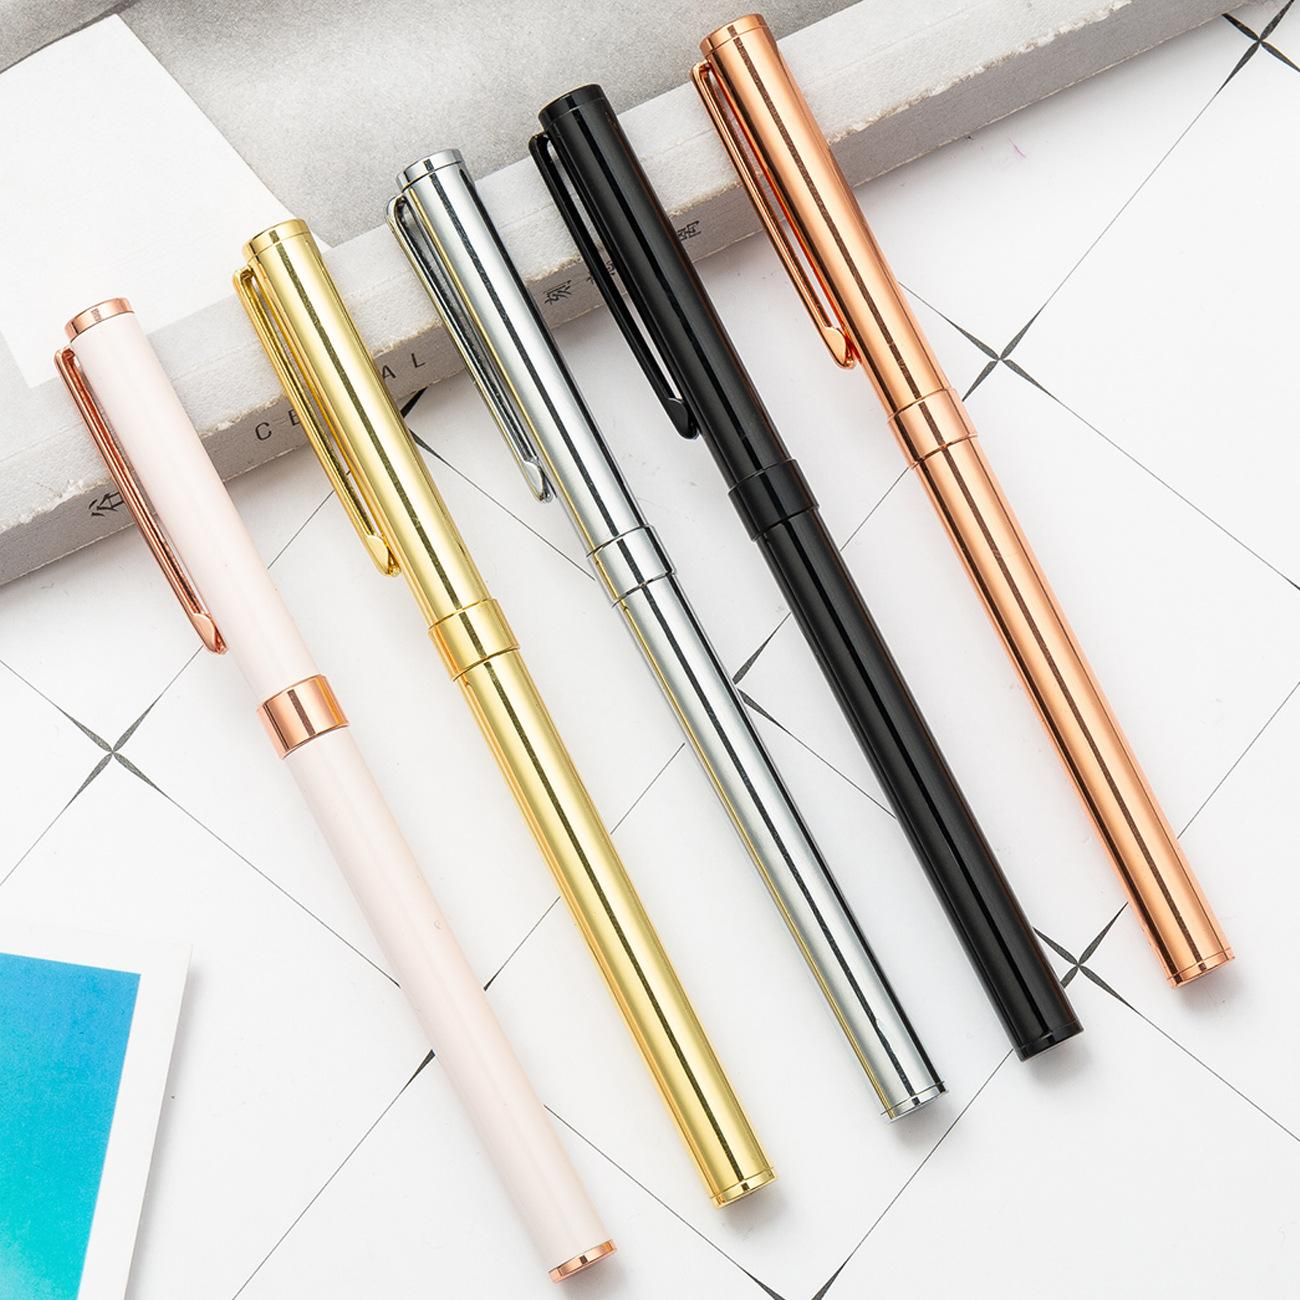 New 0.5mm Office Writing Gel Pen Learning Learning Gifts Metal Business Signature Pen Creative Treasure Beads Pen